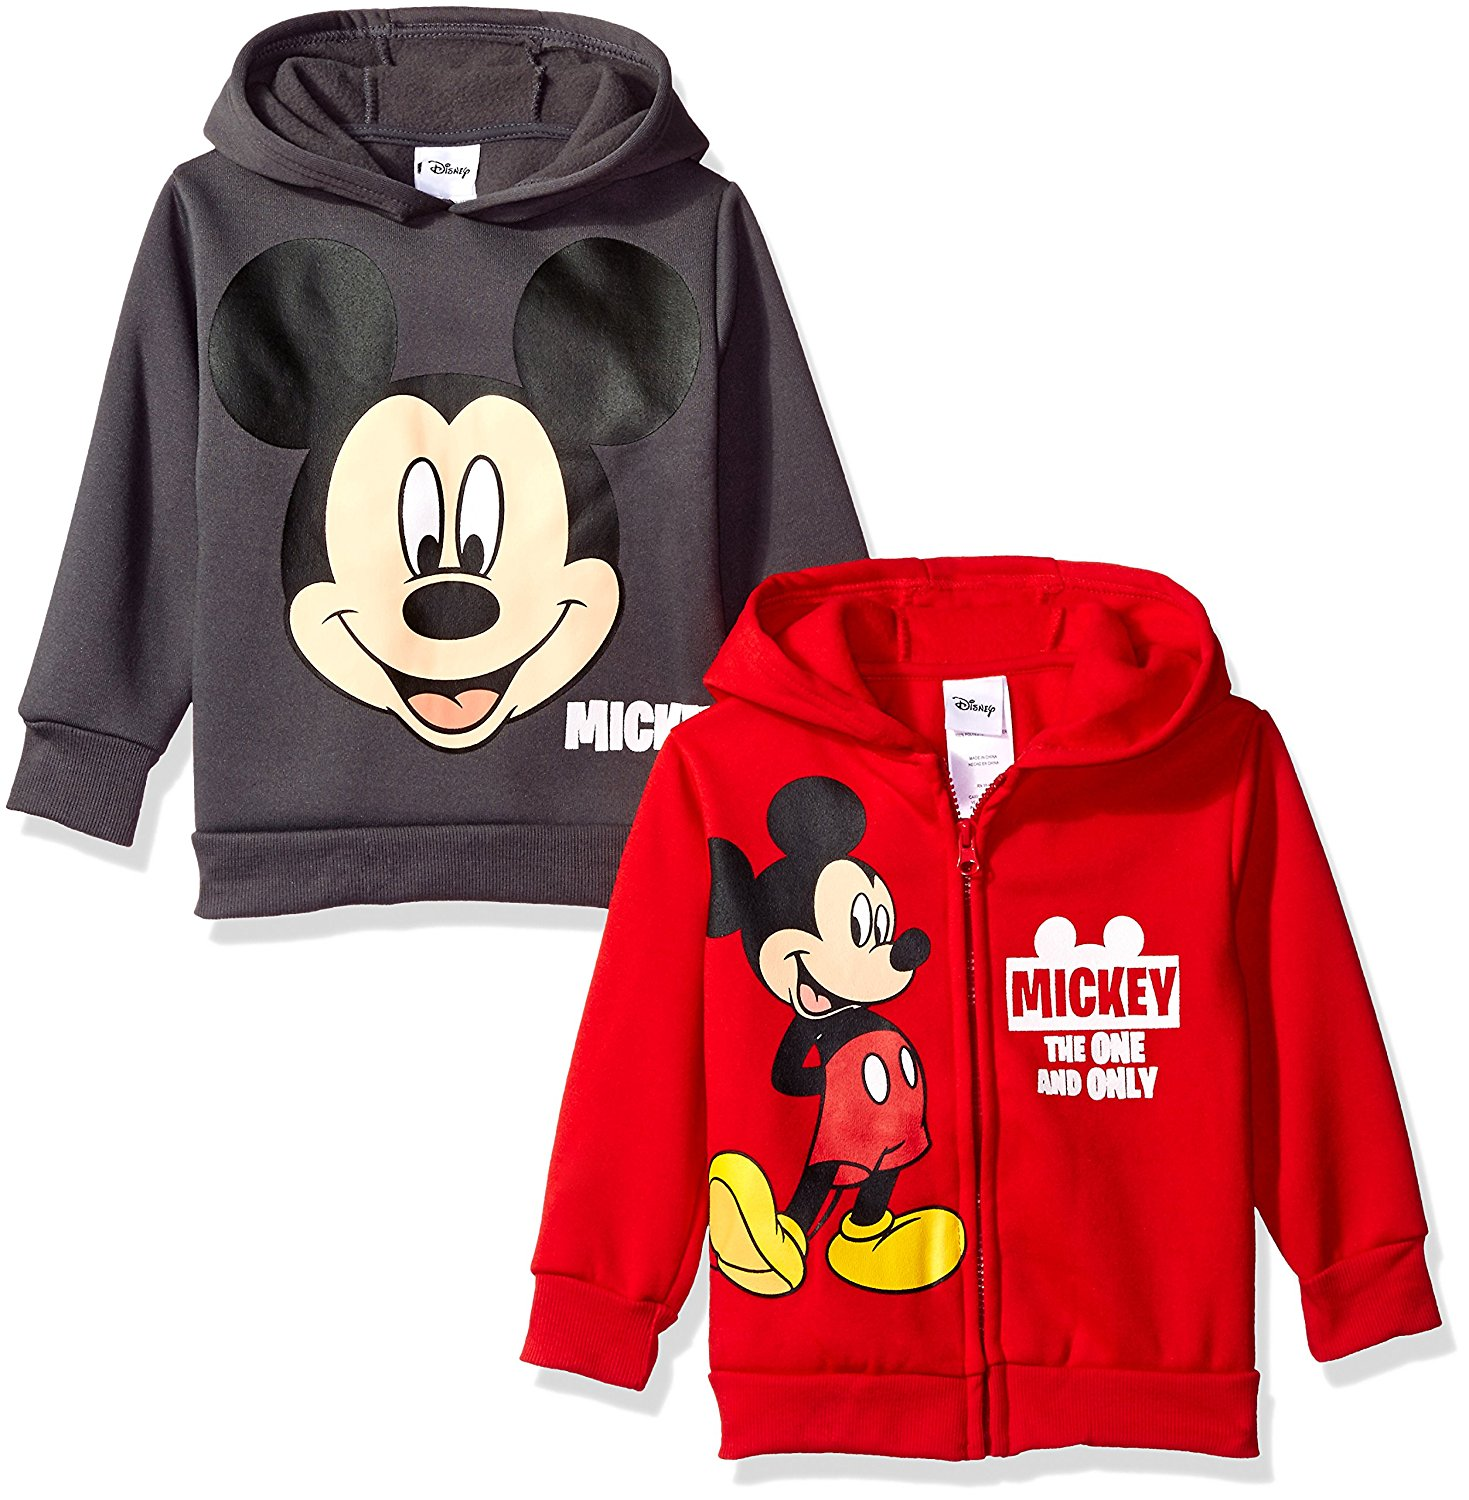 Disney Boys' Mickey Mouse 2 Pack Hoodies